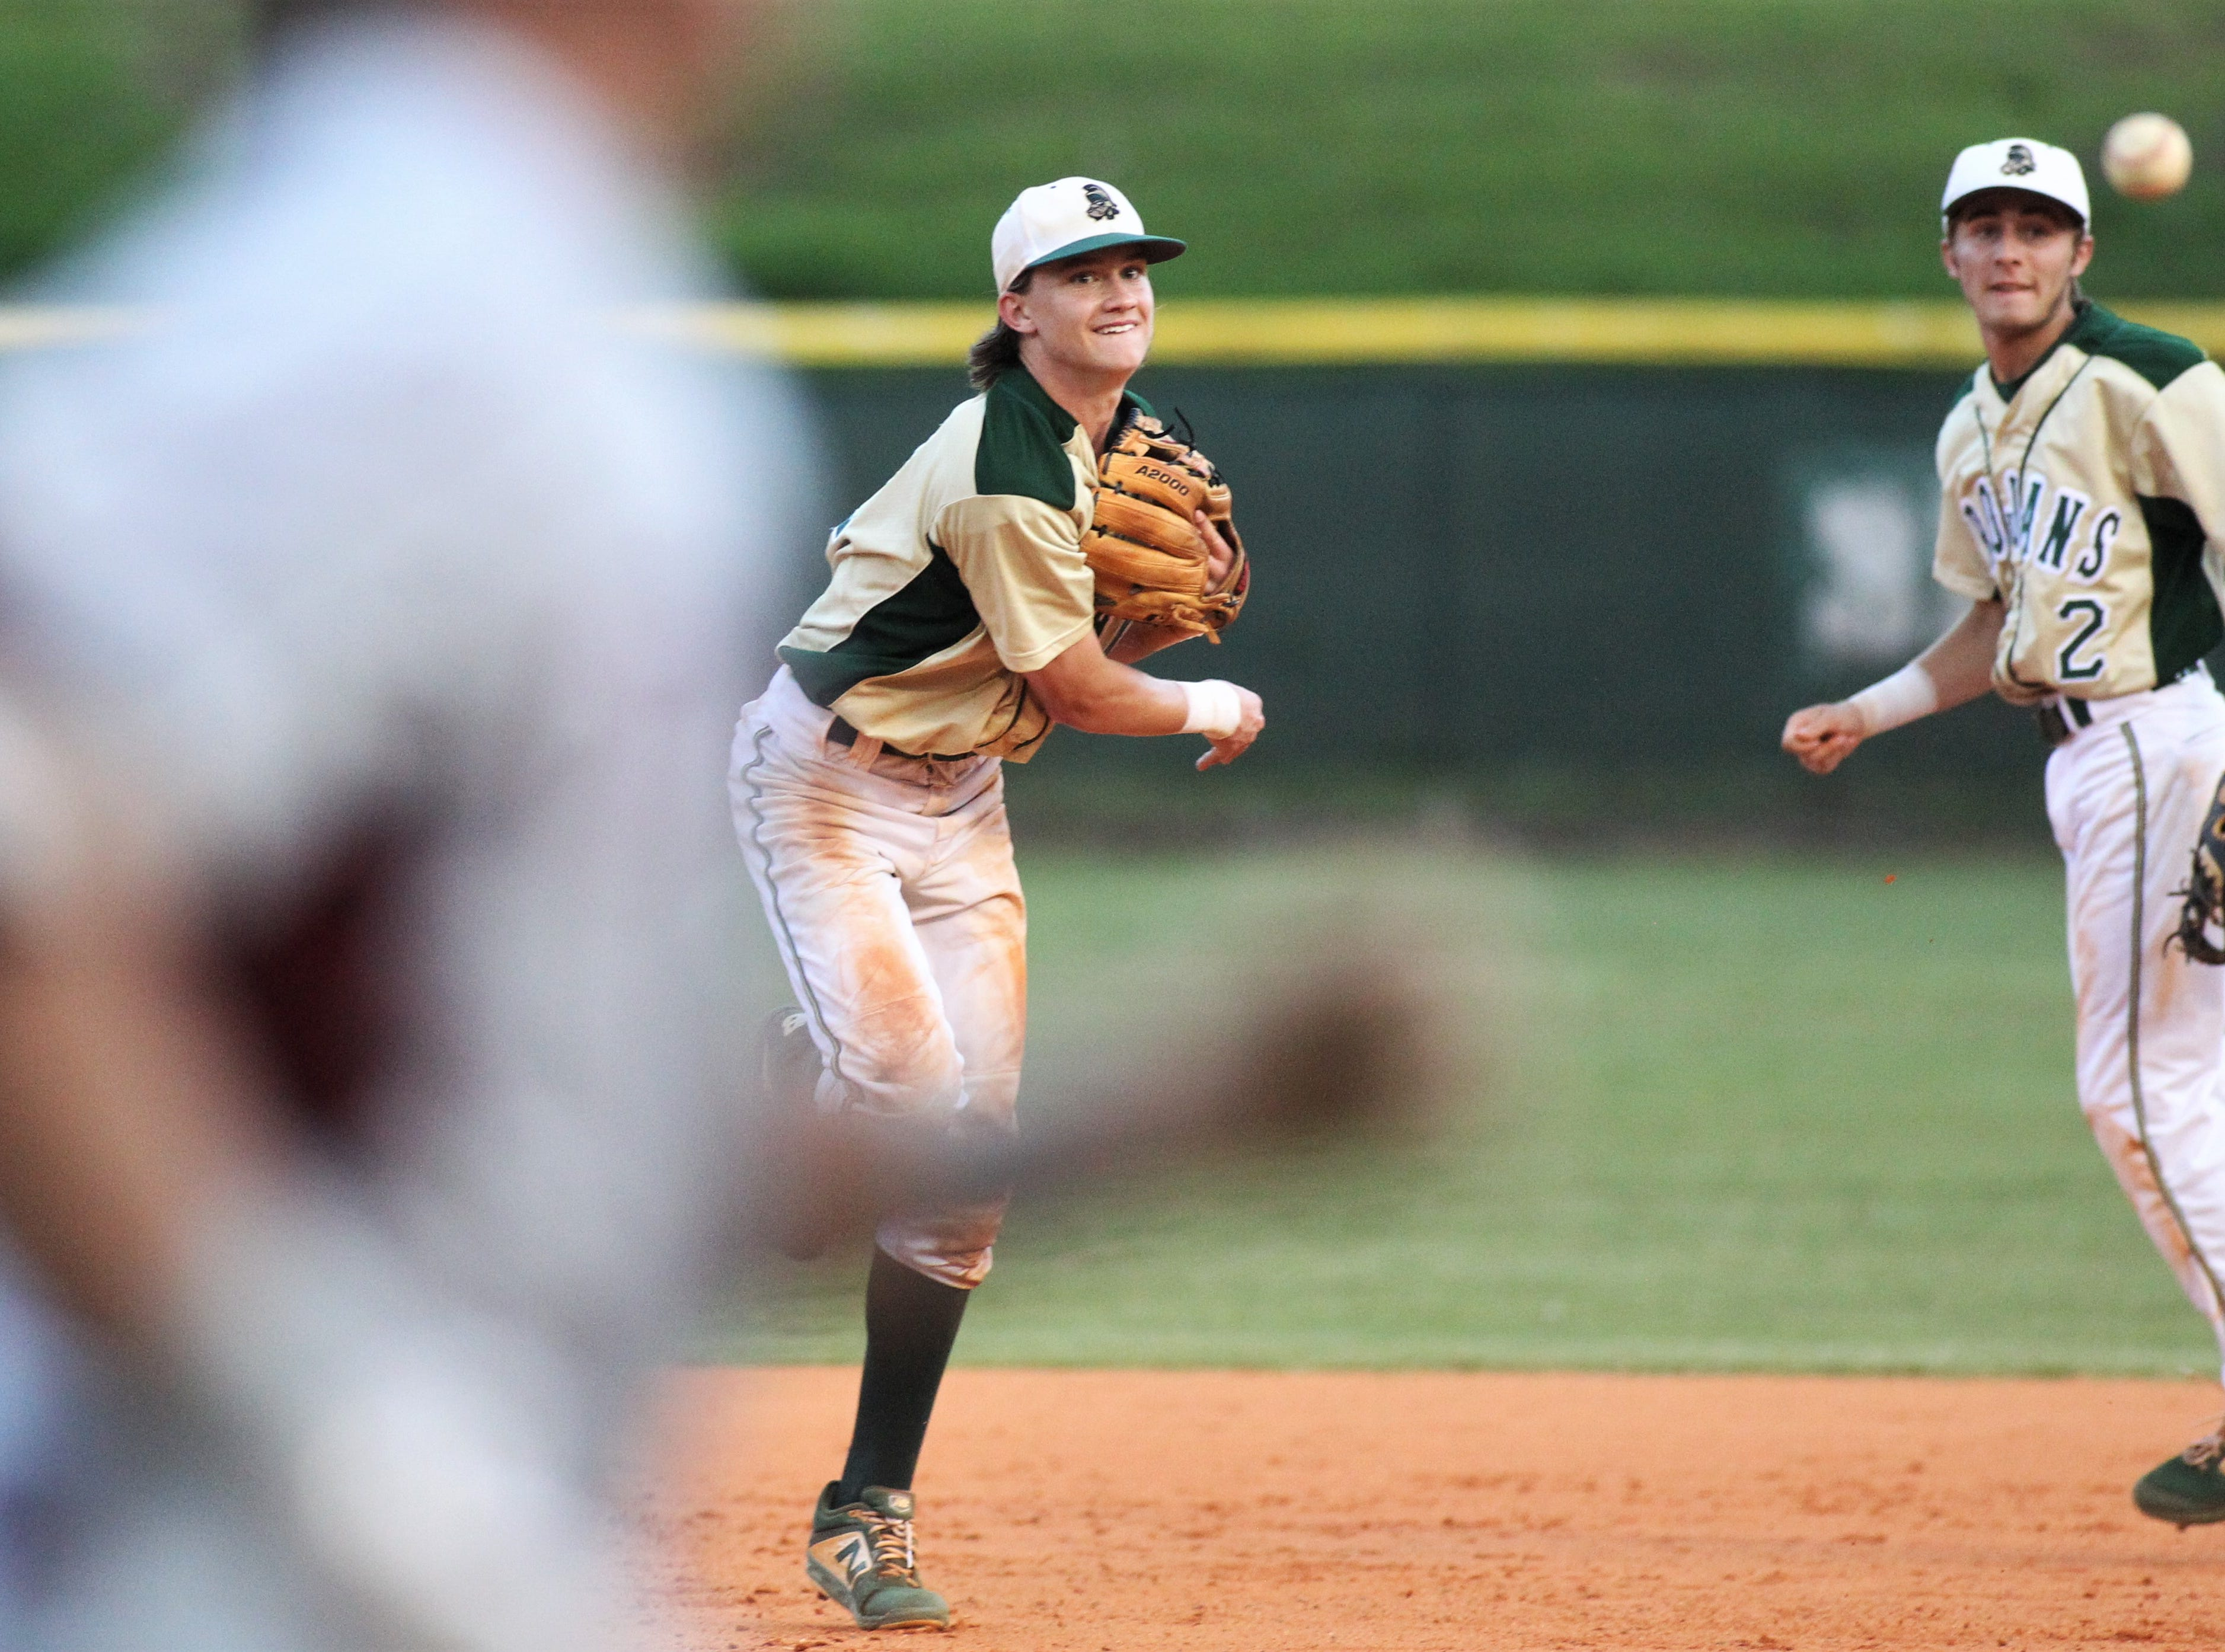 Lincoln shortstop Nick Standridge throws to first for an out as Lincoln baseball beat Chiles 5-4  in 10 innings during a District 2-8A championship game on Thursday, May 9, 2019.